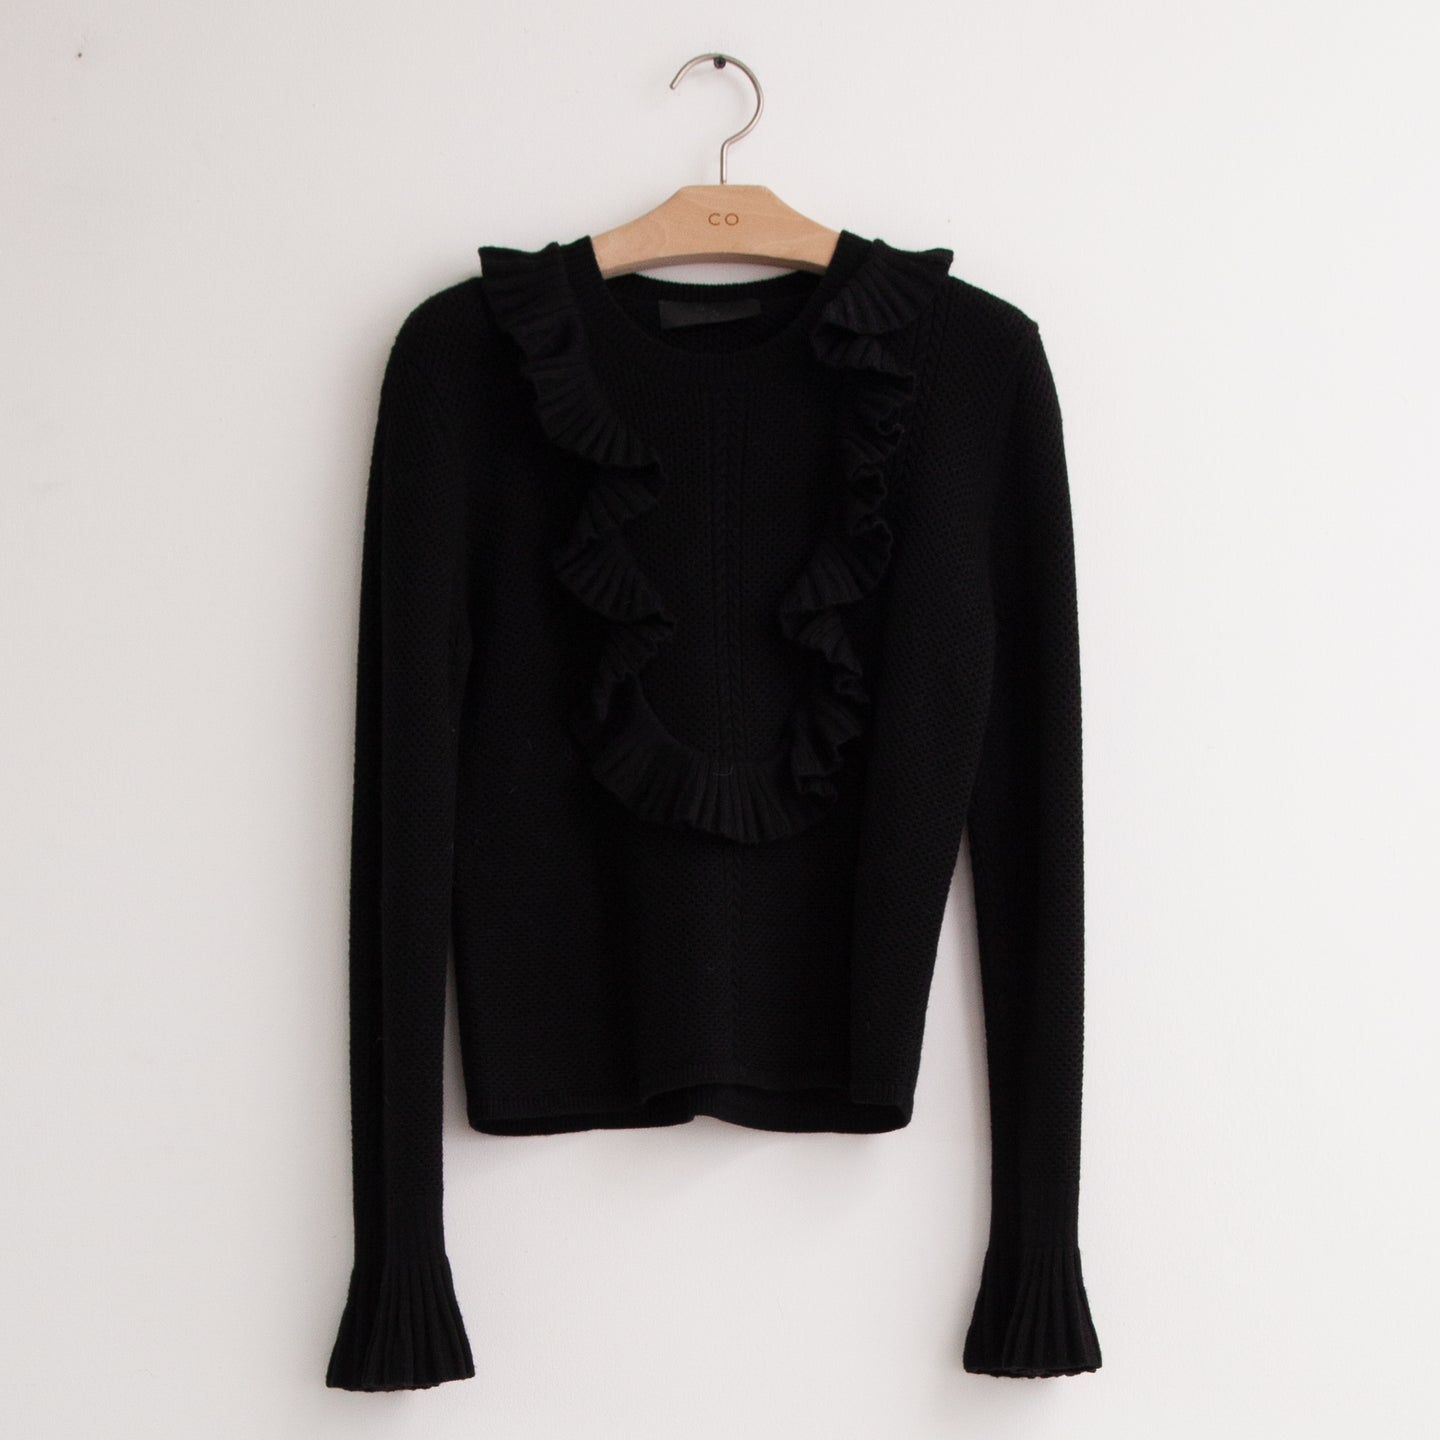 CO - Cable knit sweater with ruffle yolk detail and flared sleeves in black wool